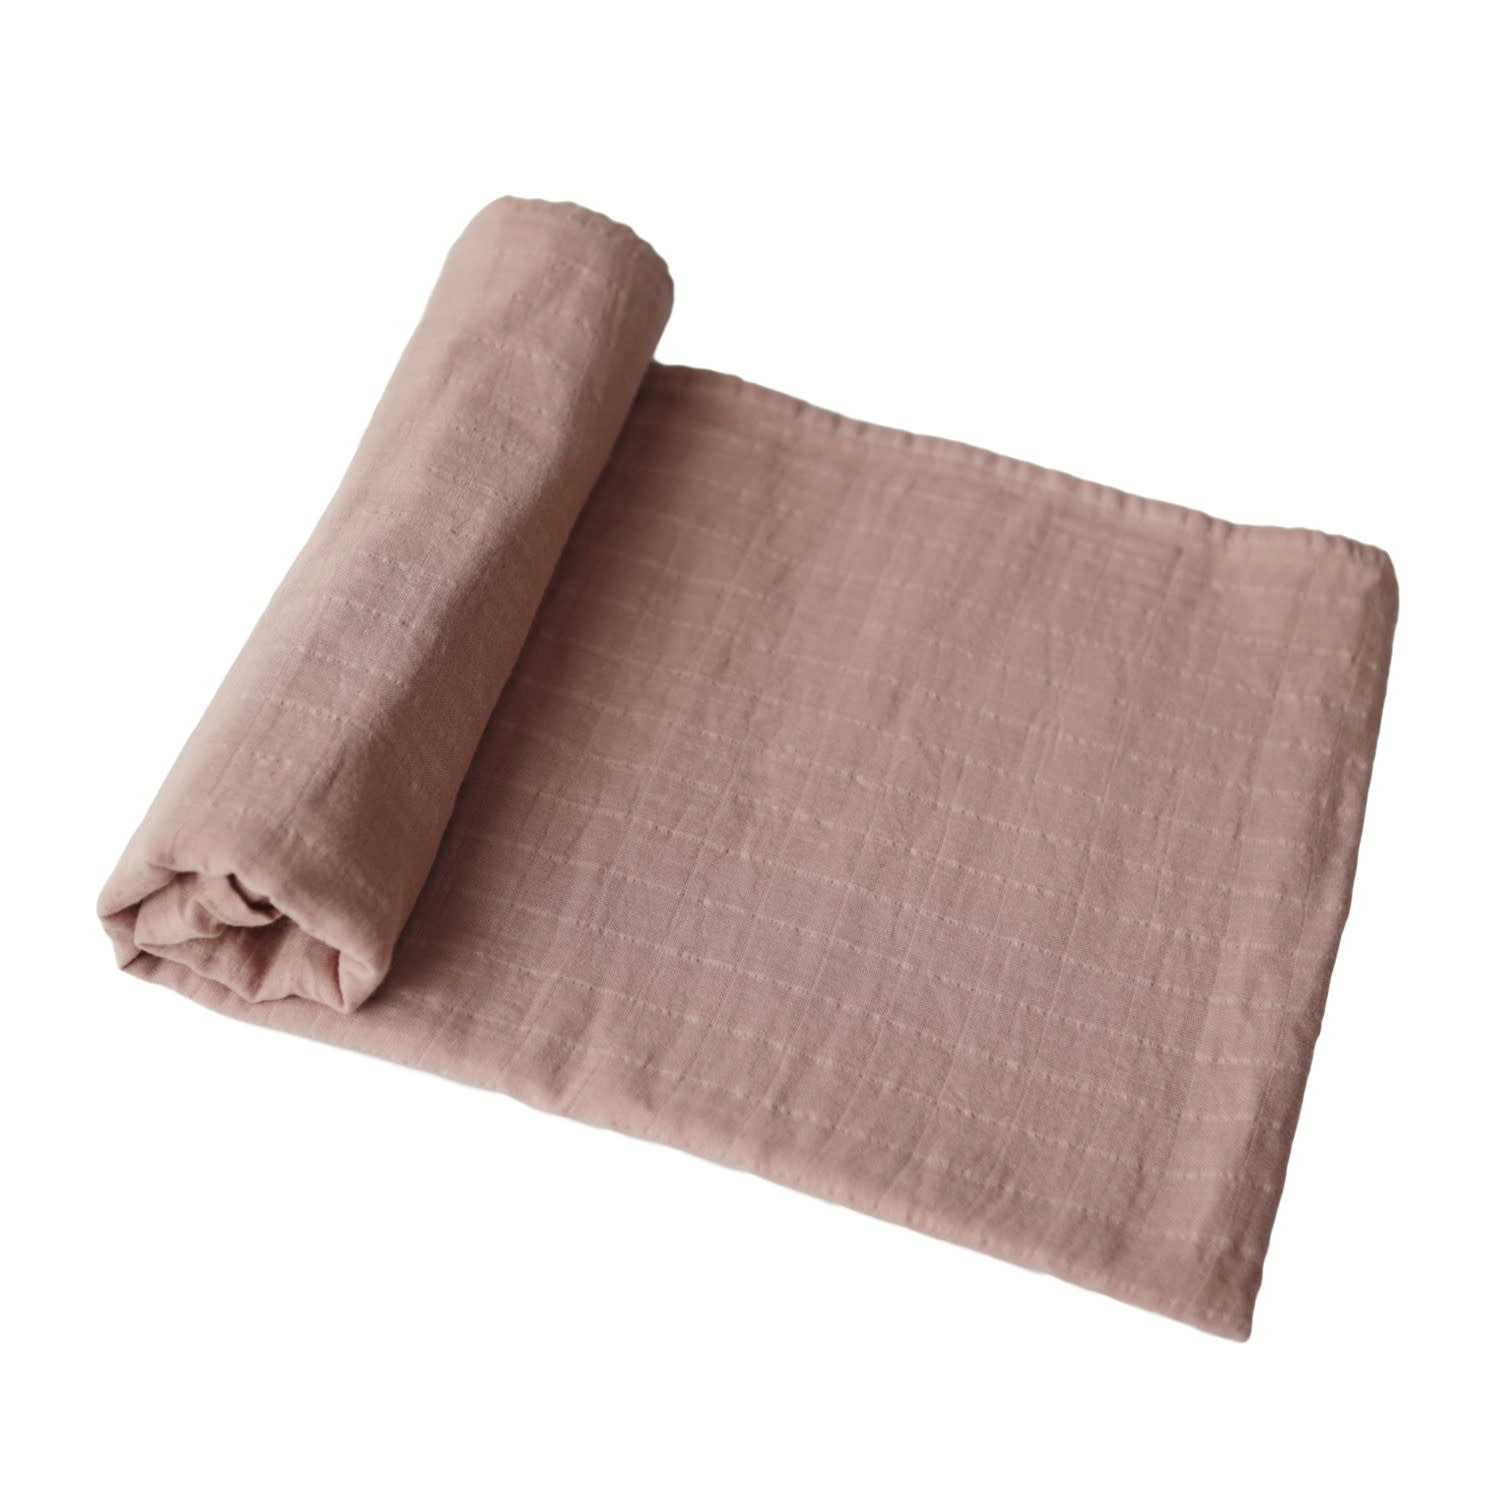 Swaddle natural-1